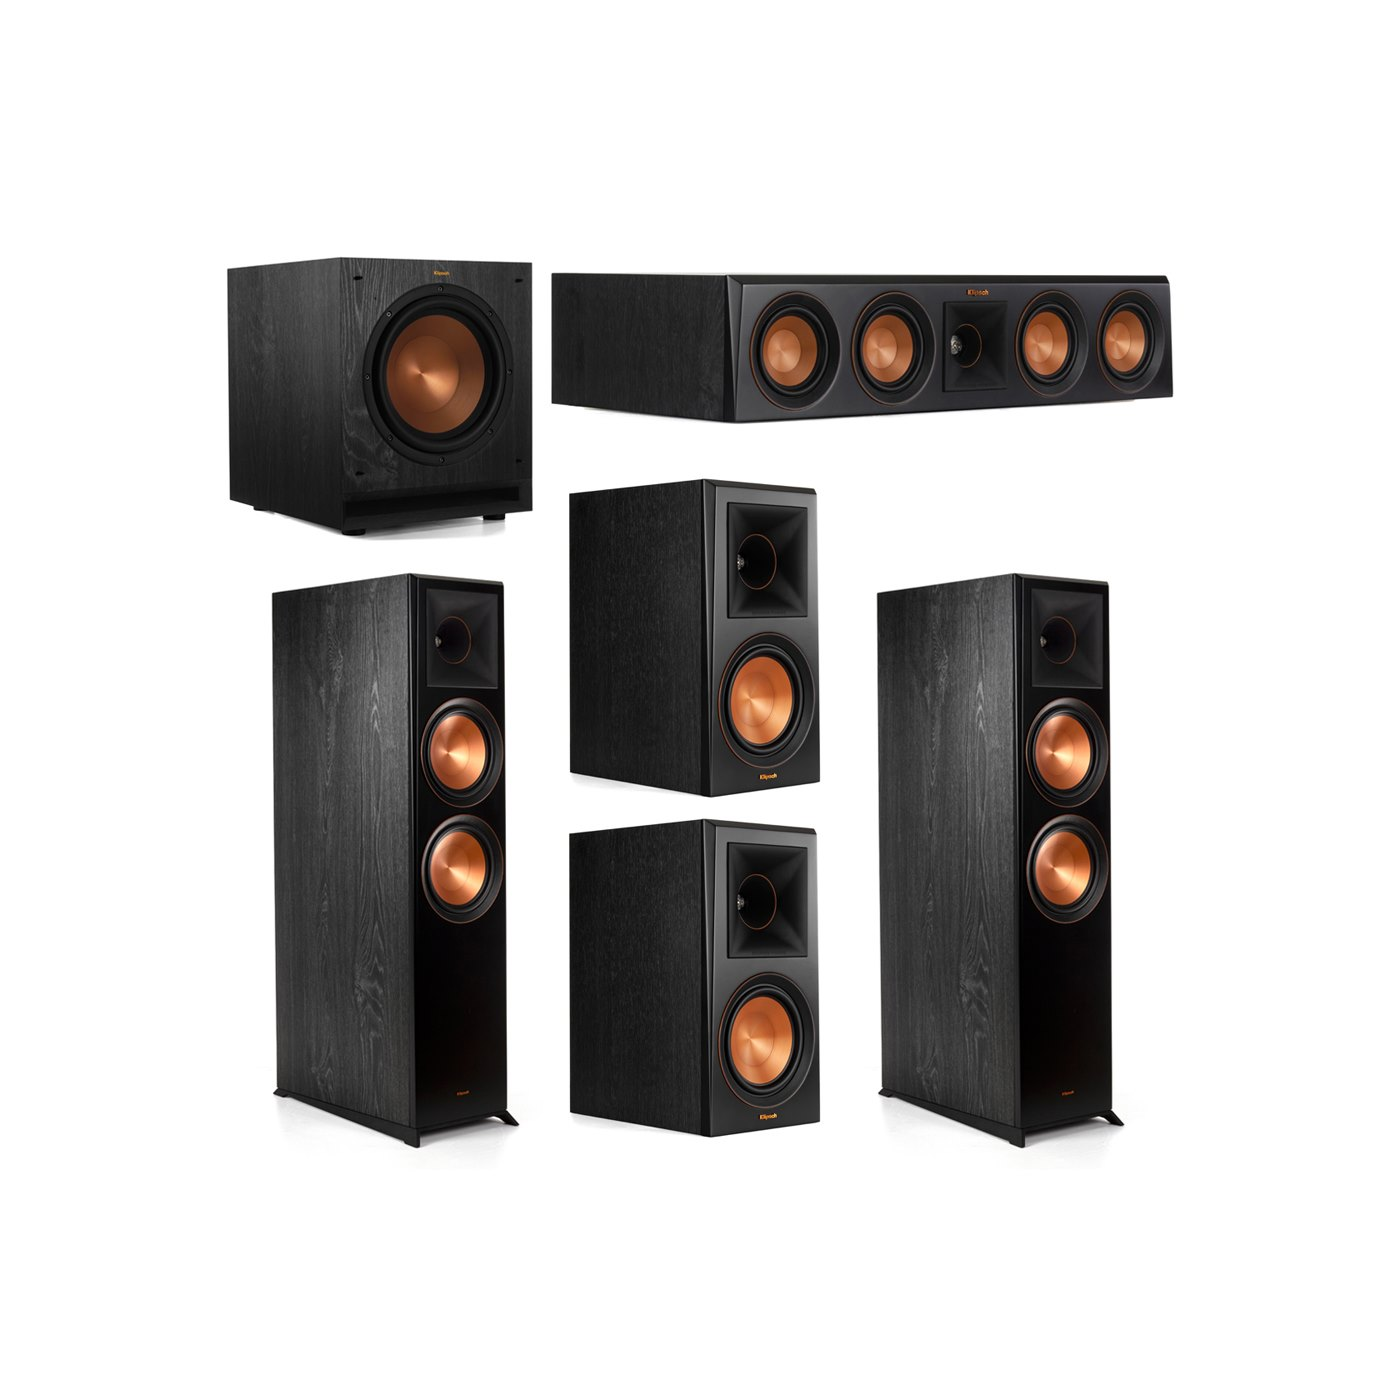 Klipsch 5.1.2 System - 2 RP-8060FA Dolby Atmos Speakers, 1 RP-404C, 2 RP-600M Speakers, 1 SPL-100